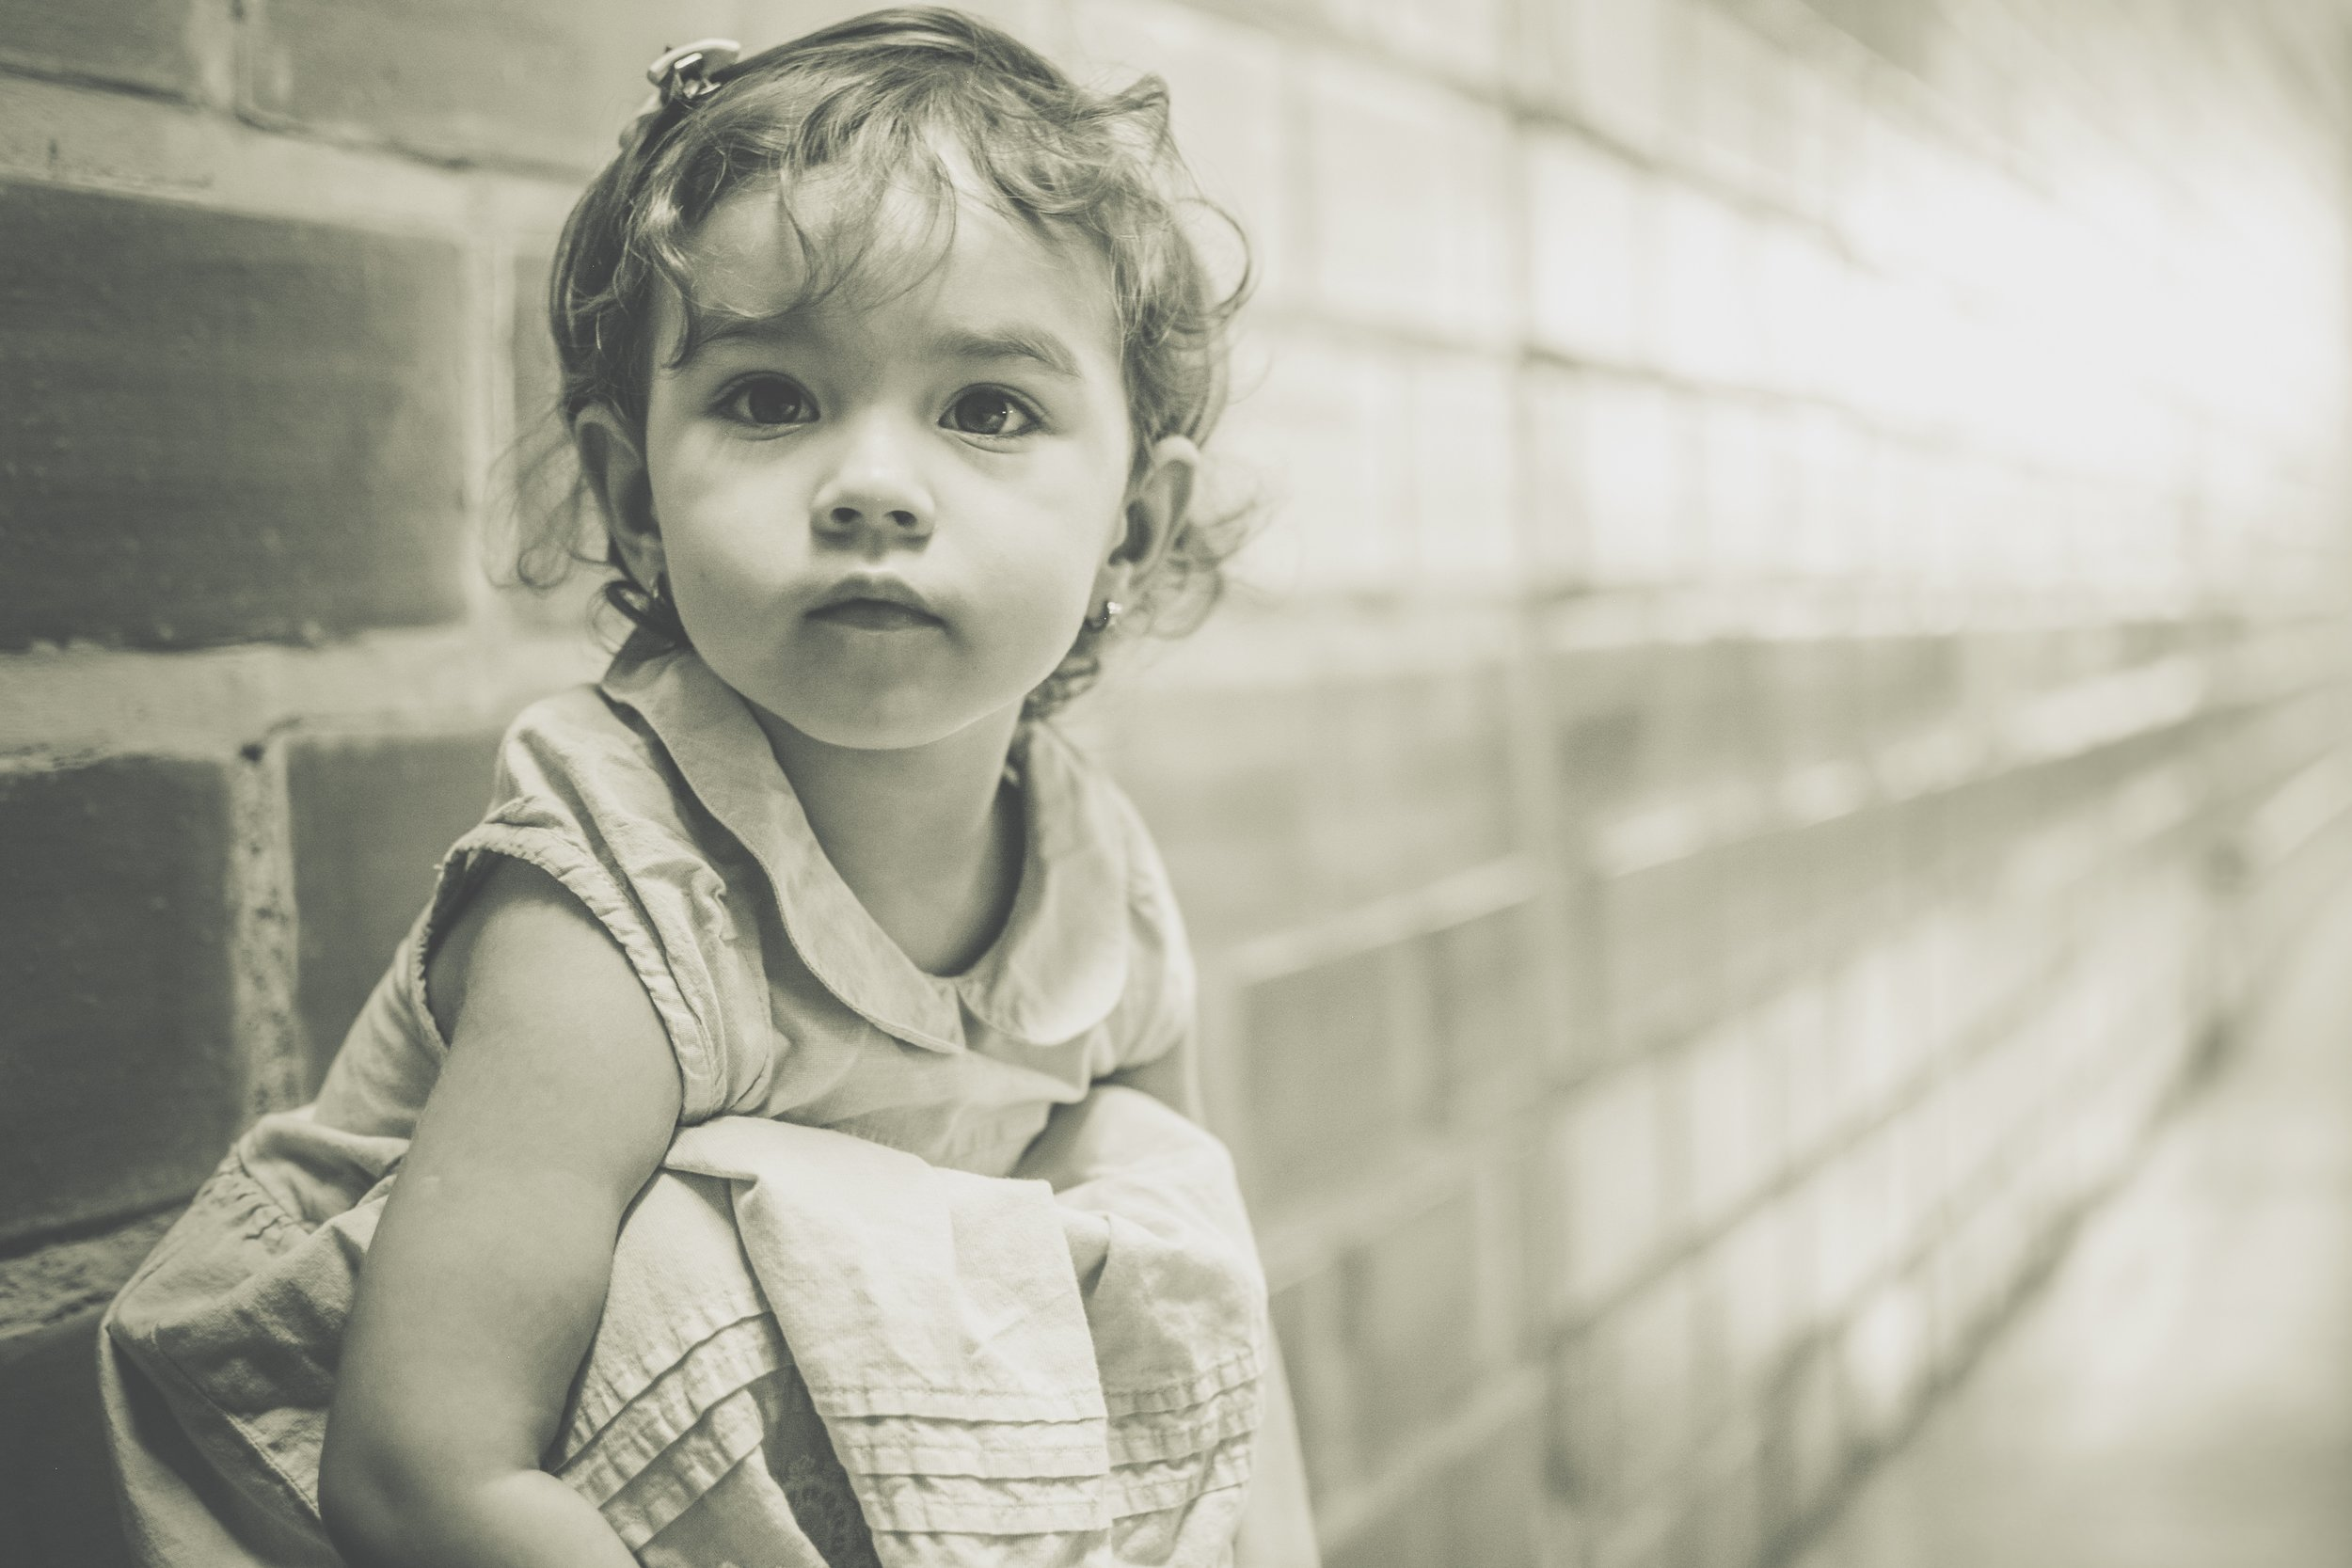 adorable-baby-black-and-white-326551.jpg